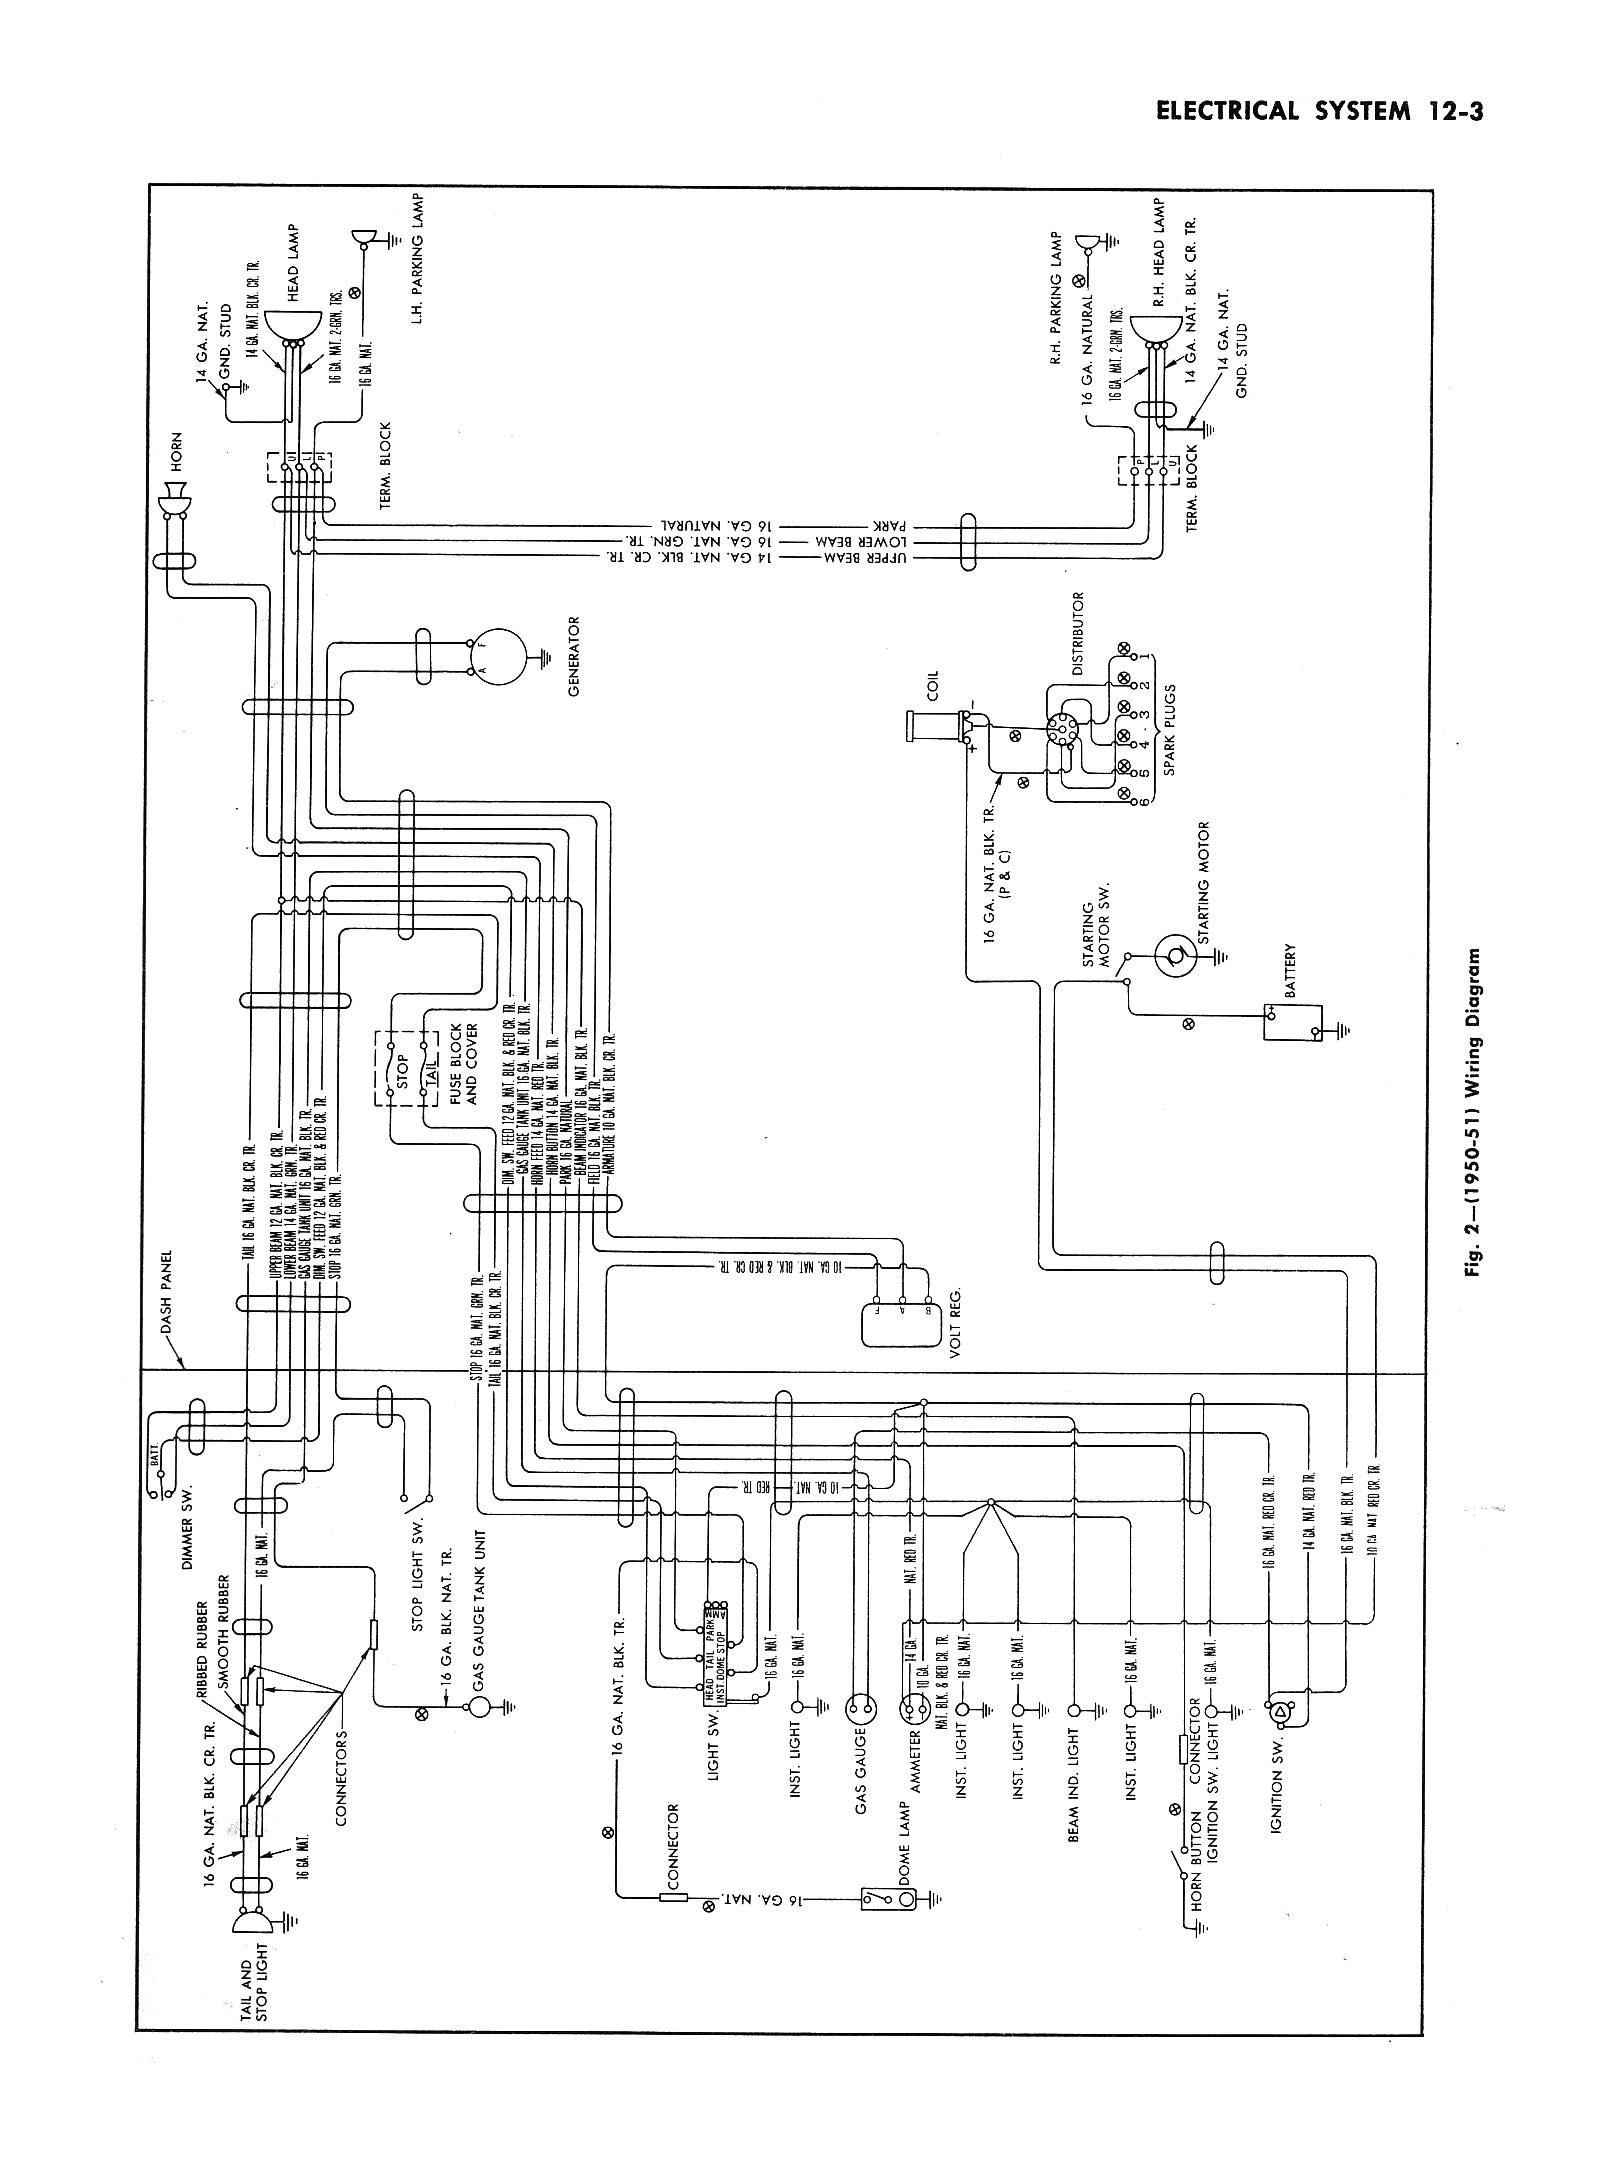 Simple Drag Car Wiring Diagram on race car diagram, drag car ford, drag race wiring, drag car parts, drag car engine, drag race layout, drag car transmission, nissan ecu pinouts diagram, drag car motor, car kill switch diagram, drag car dimensions, drag car frame, drag car screw, drag car wheels, drag car relay, drag car suspension, how does a car horn work diagram, drag car tires, brake line routing diagram, drag car exhaust,